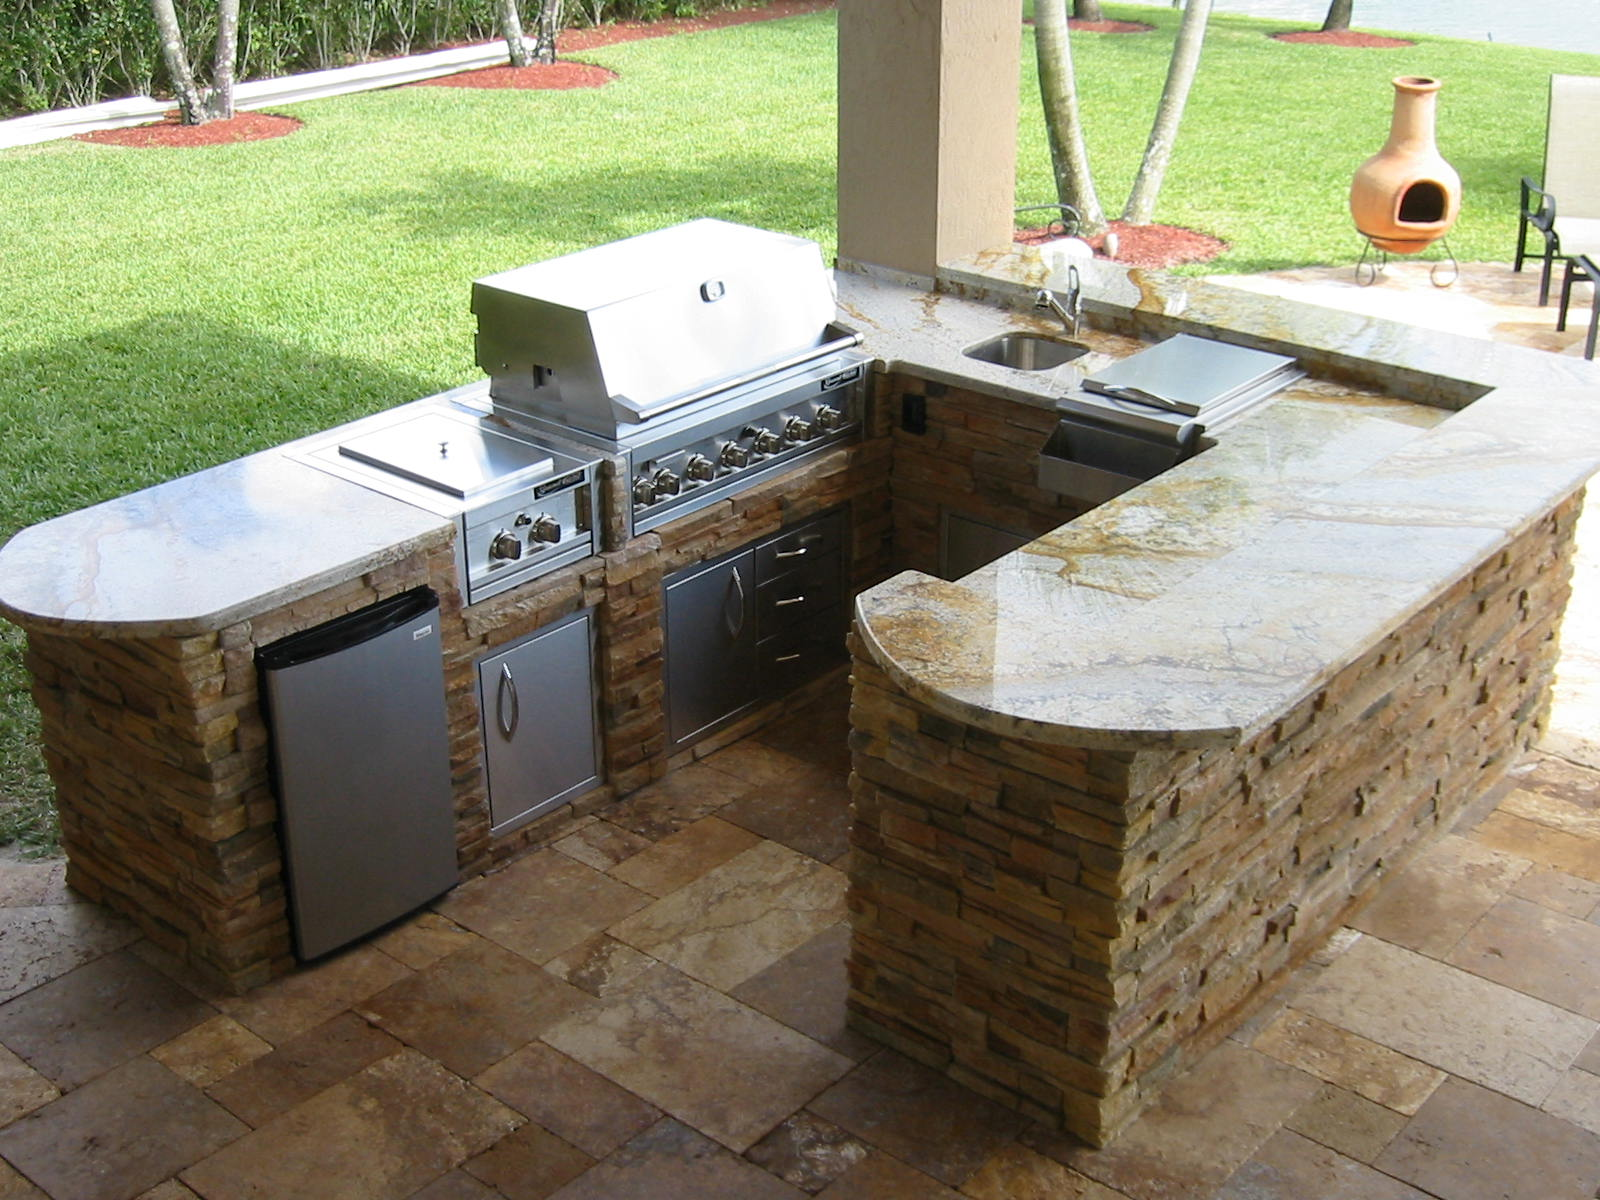 Outdoor kitchen depot outdoor kitchen building and design for Outdoor kitchen ideas pictures